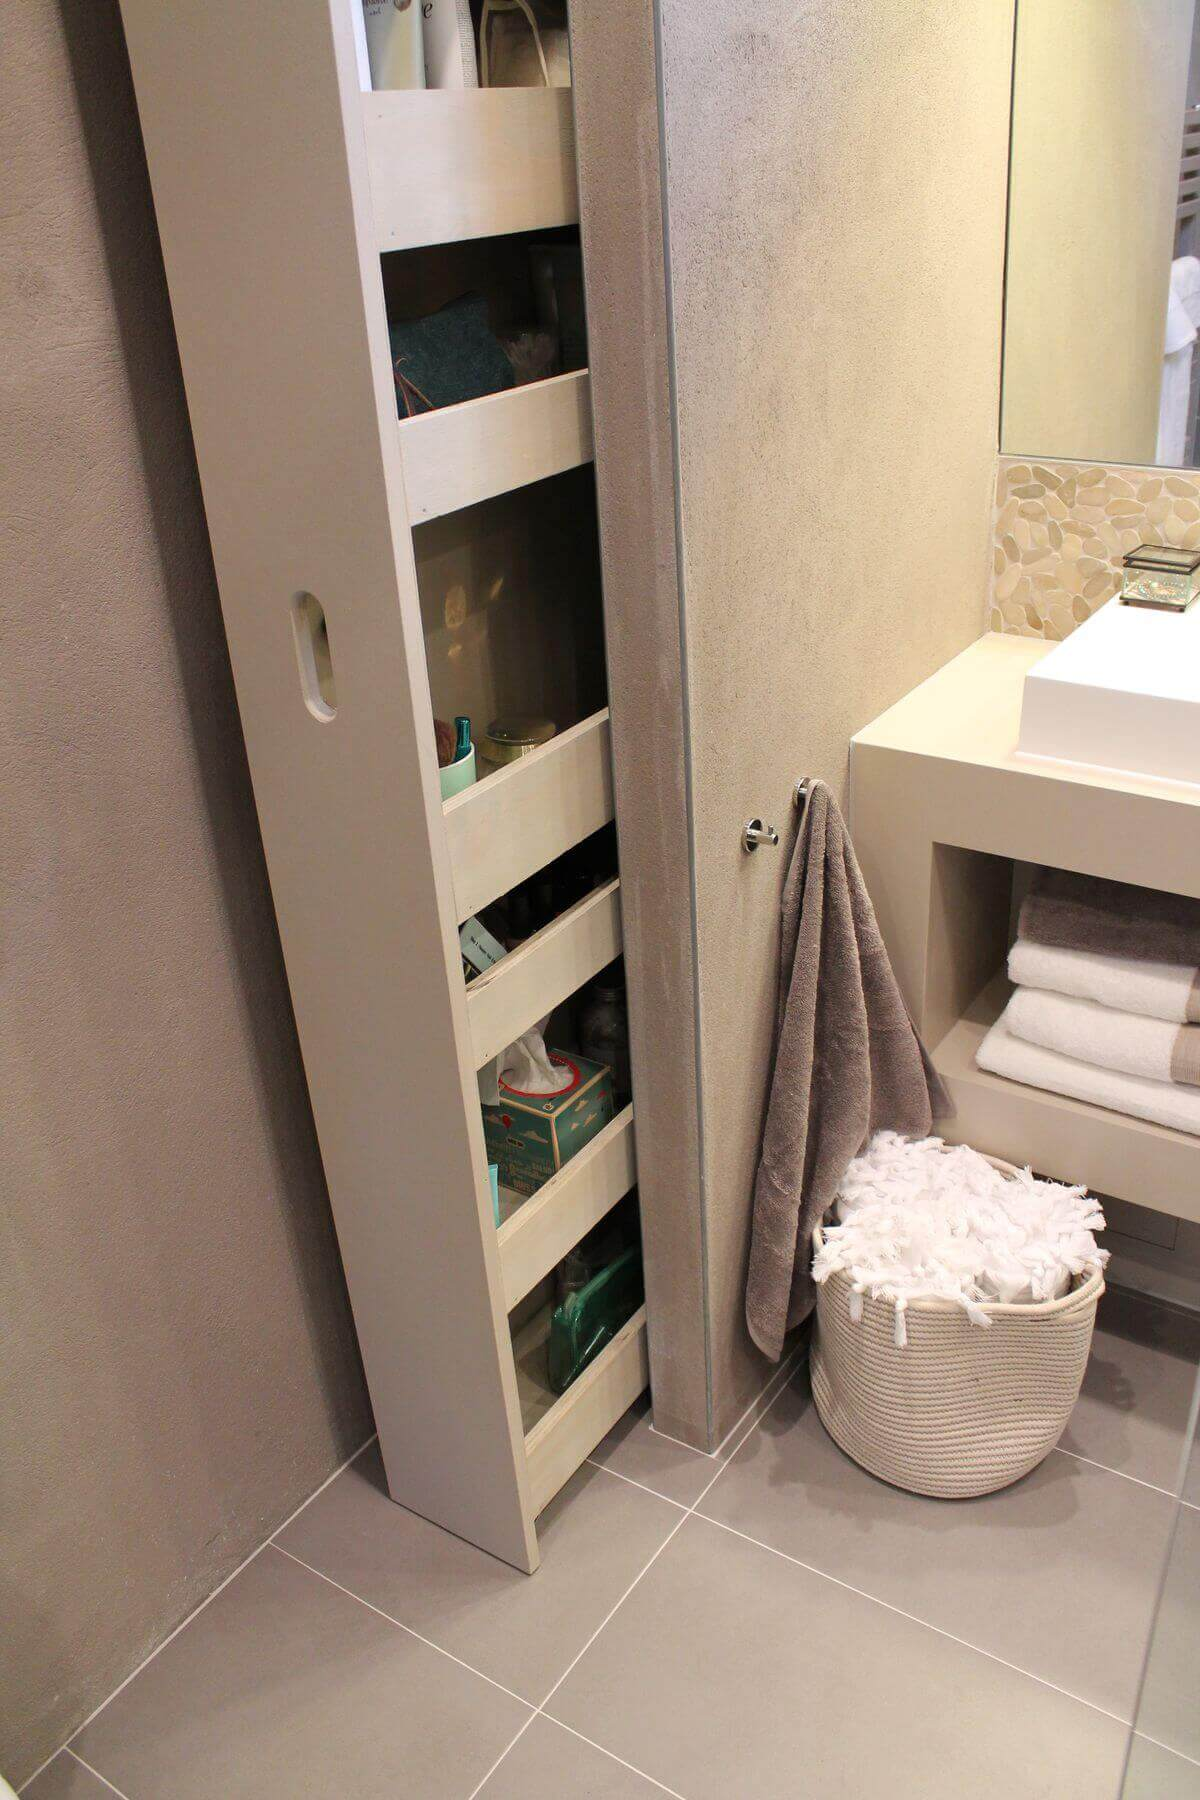 Kleine Badkamer Met Bad En Wc 25 Best Built-in Bathroom Shelf And Storage Ideas For 2019